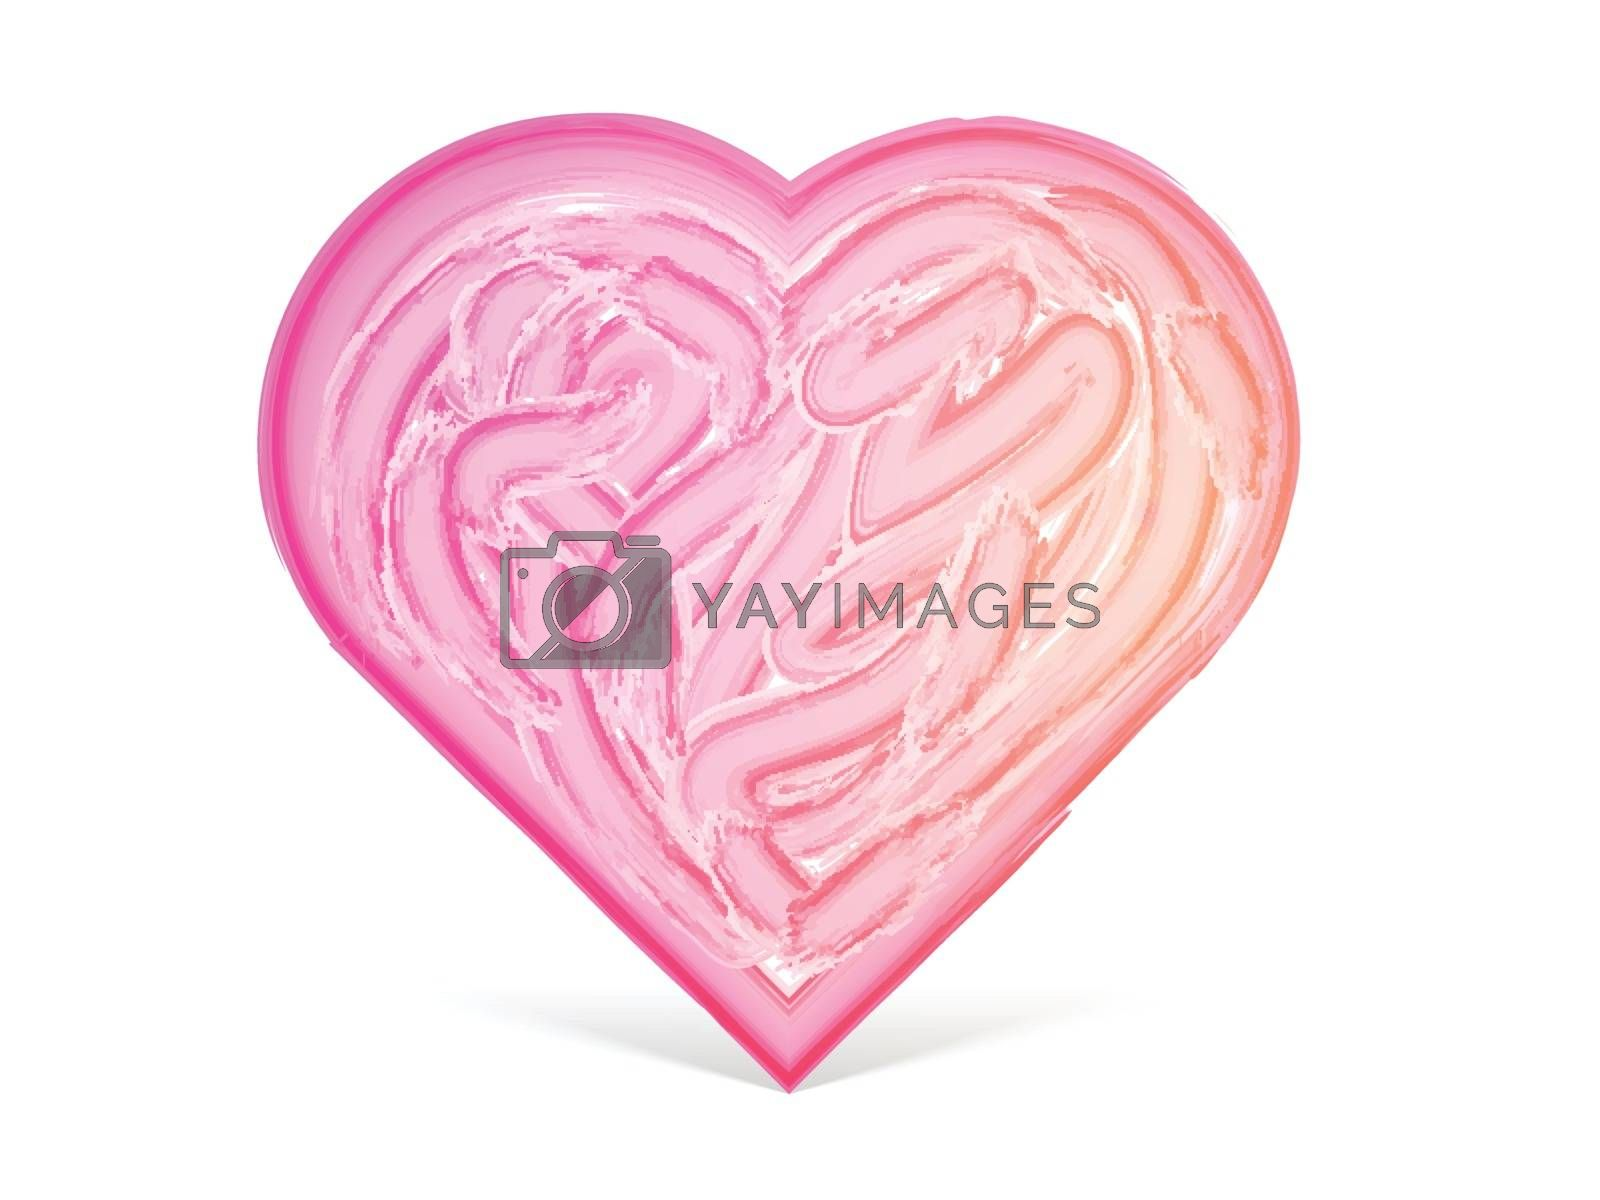 Creative Heart design made by brush strokes for Happy Valentine's Day Celebration.